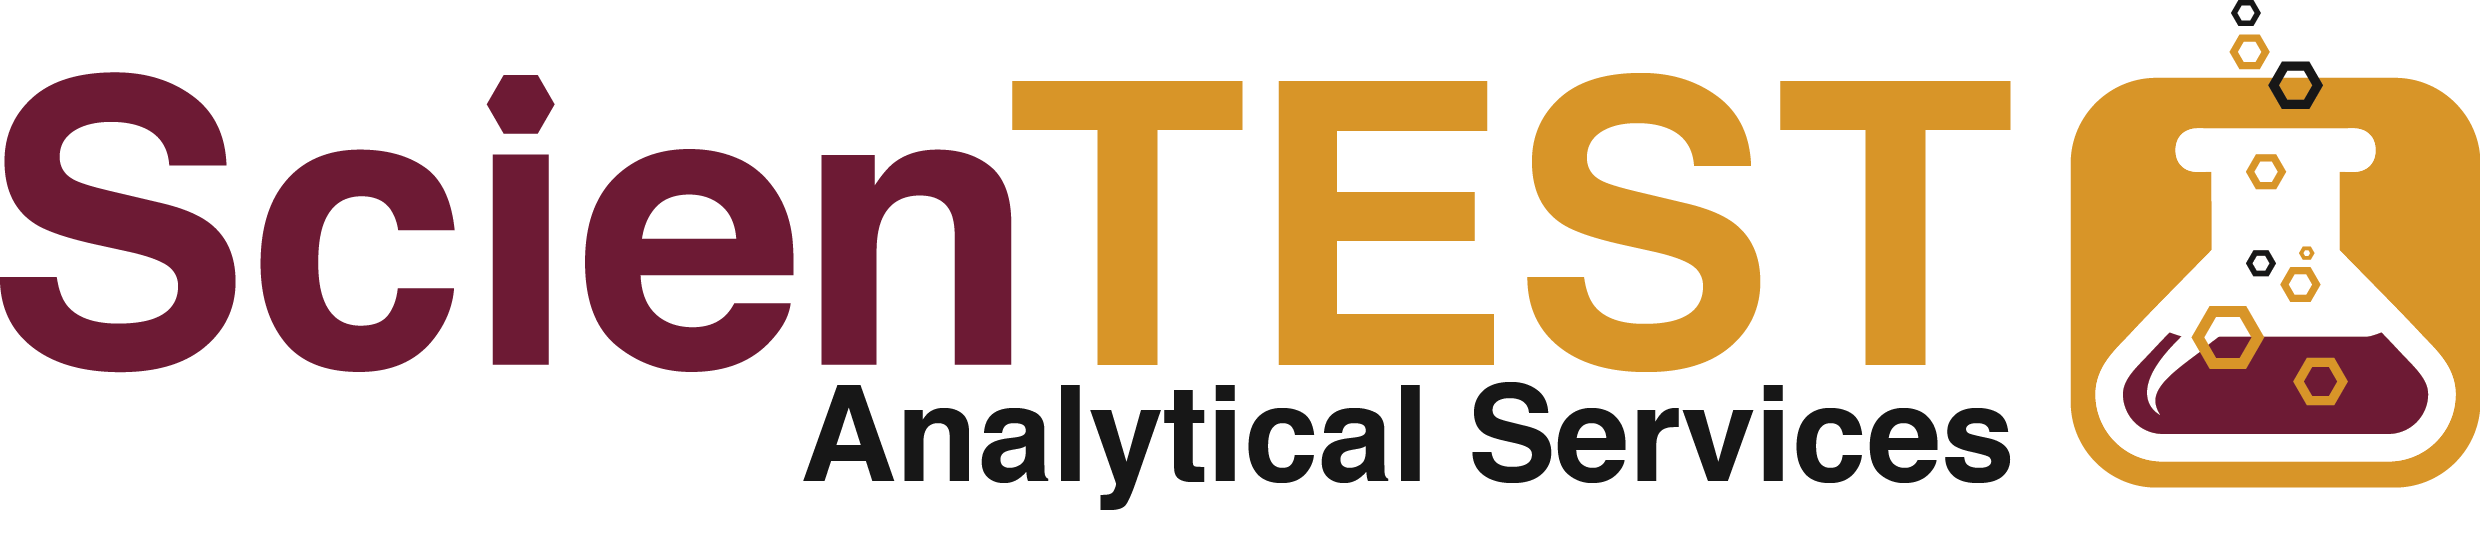 ScienTEST Analytical Services